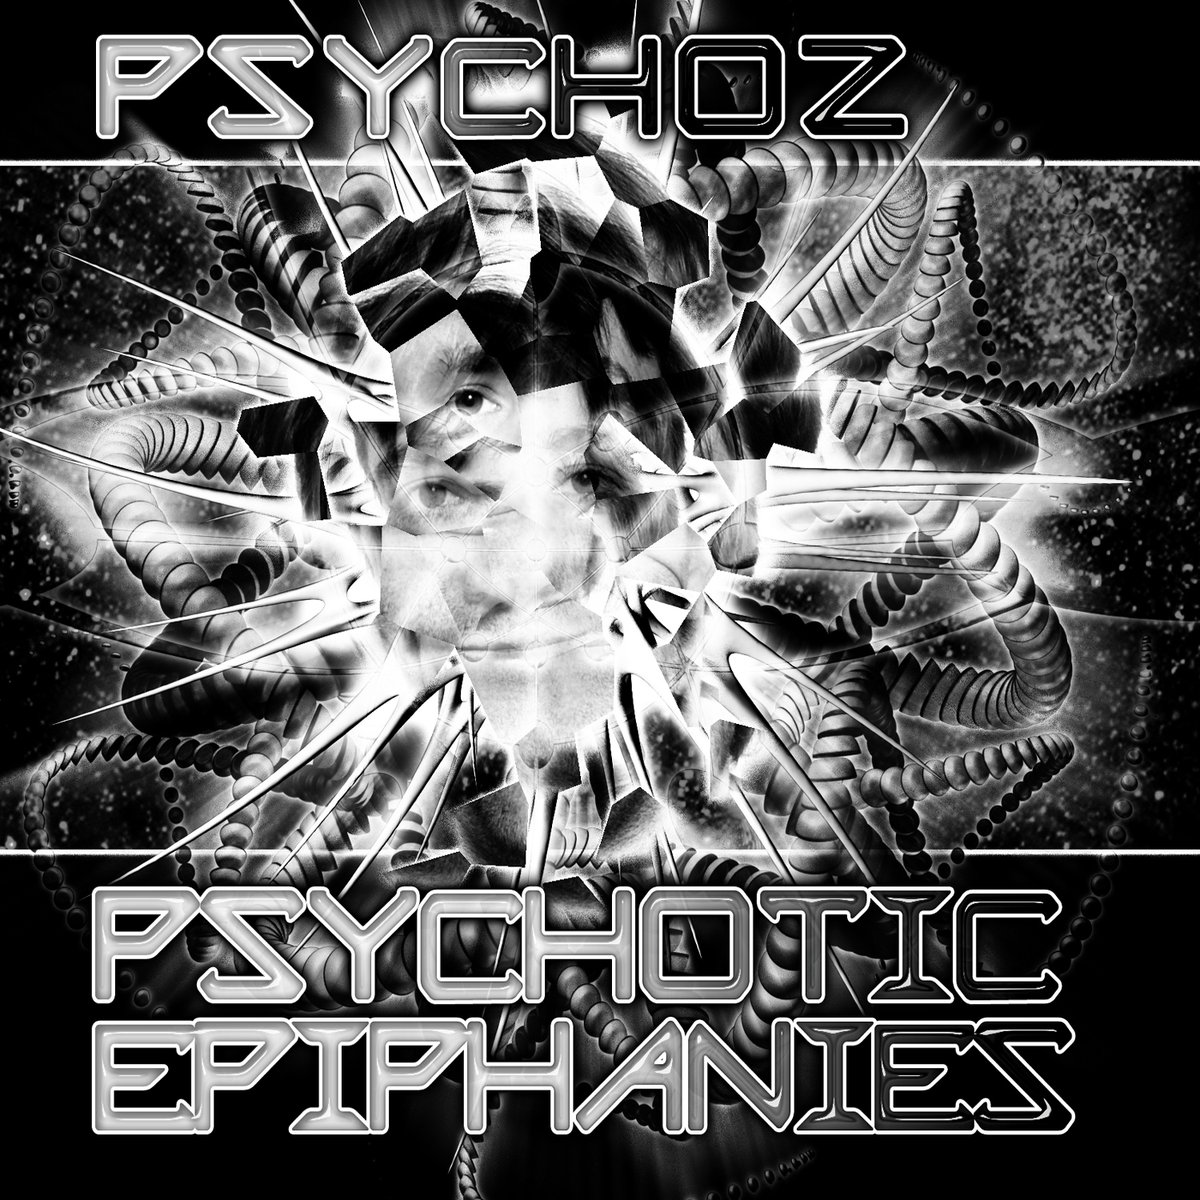 Psychoz - The Beginning (Remix) @ 'Psychotic Epiphanies' album (electronic, goa)